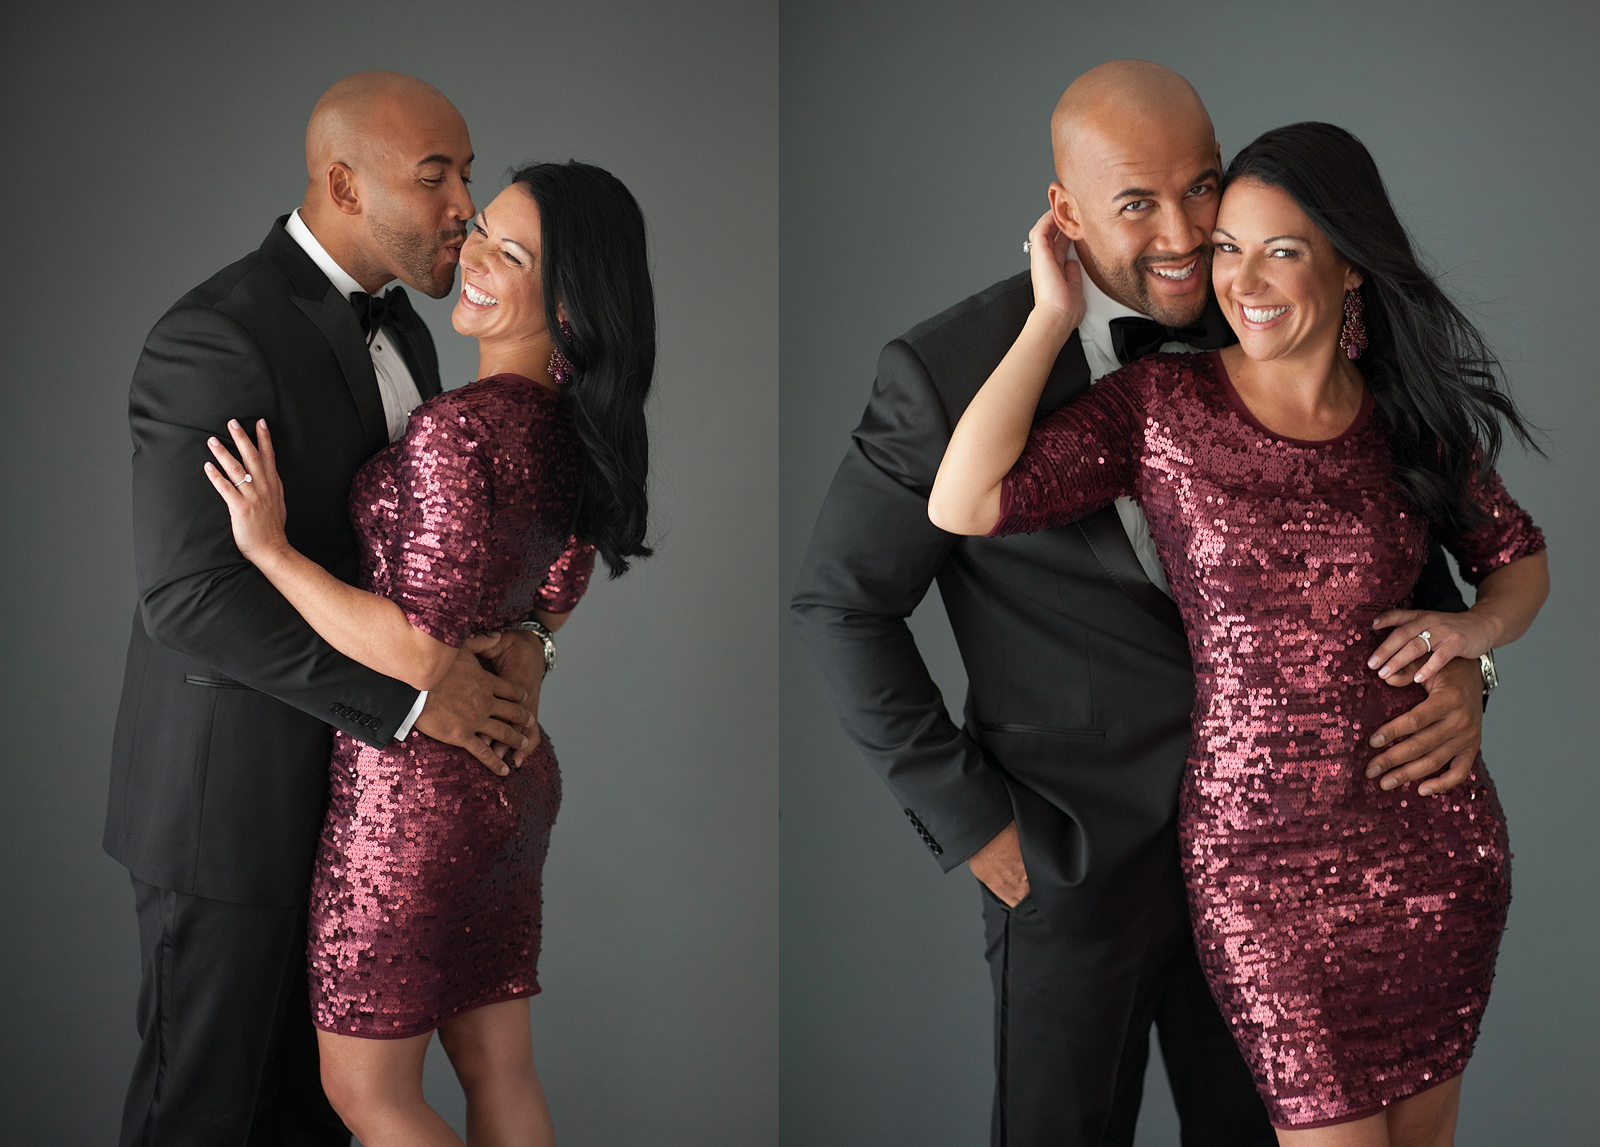 12-stunning-couple-formal-event-poses-emotion.jpg